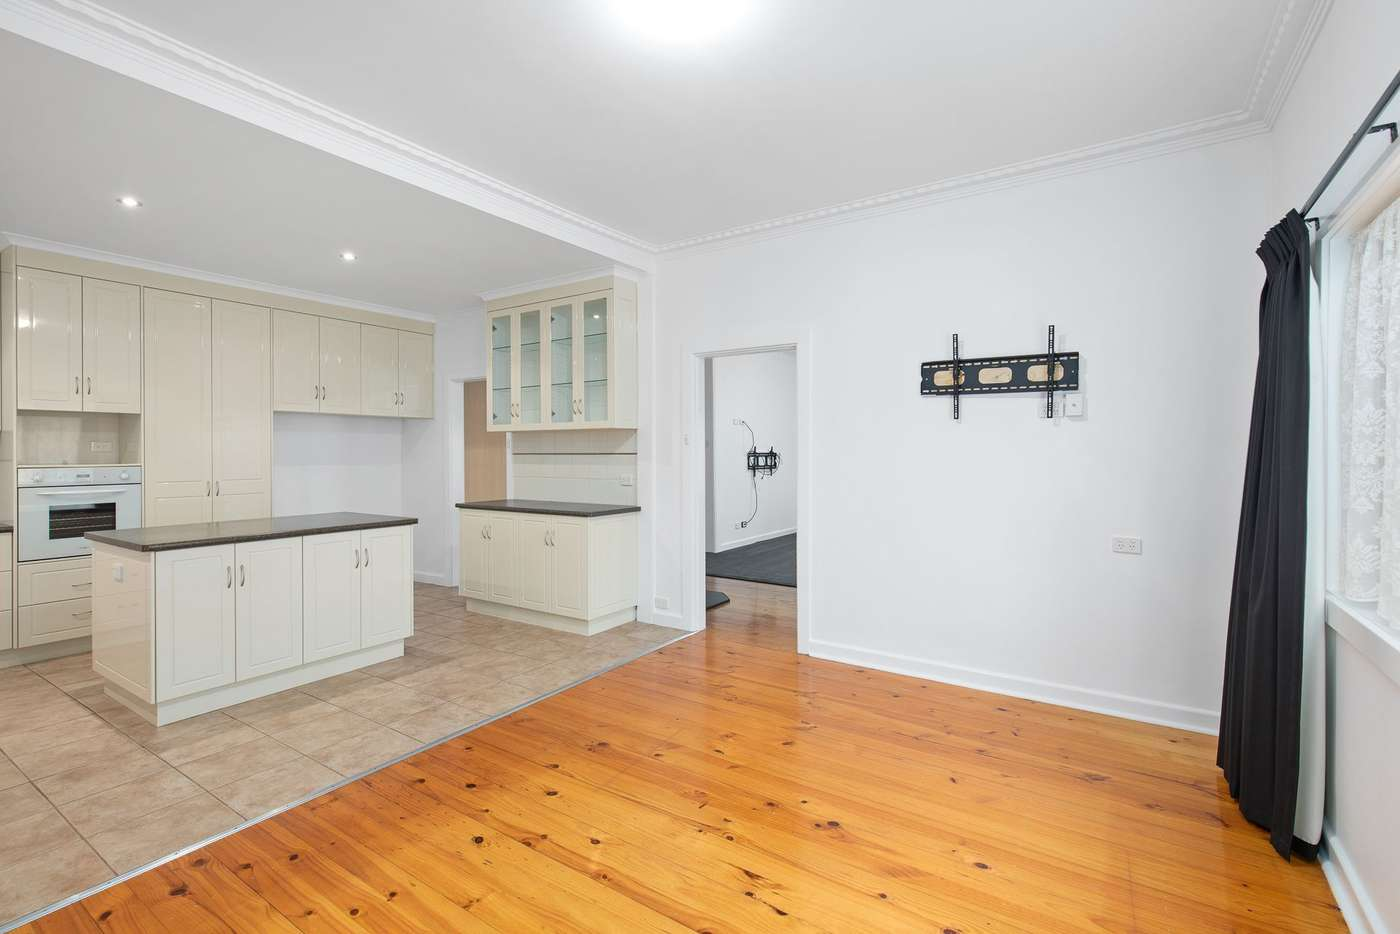 Sixth view of Homely house listing, 4 Shepherdson Road, Mount Gambier SA 5290